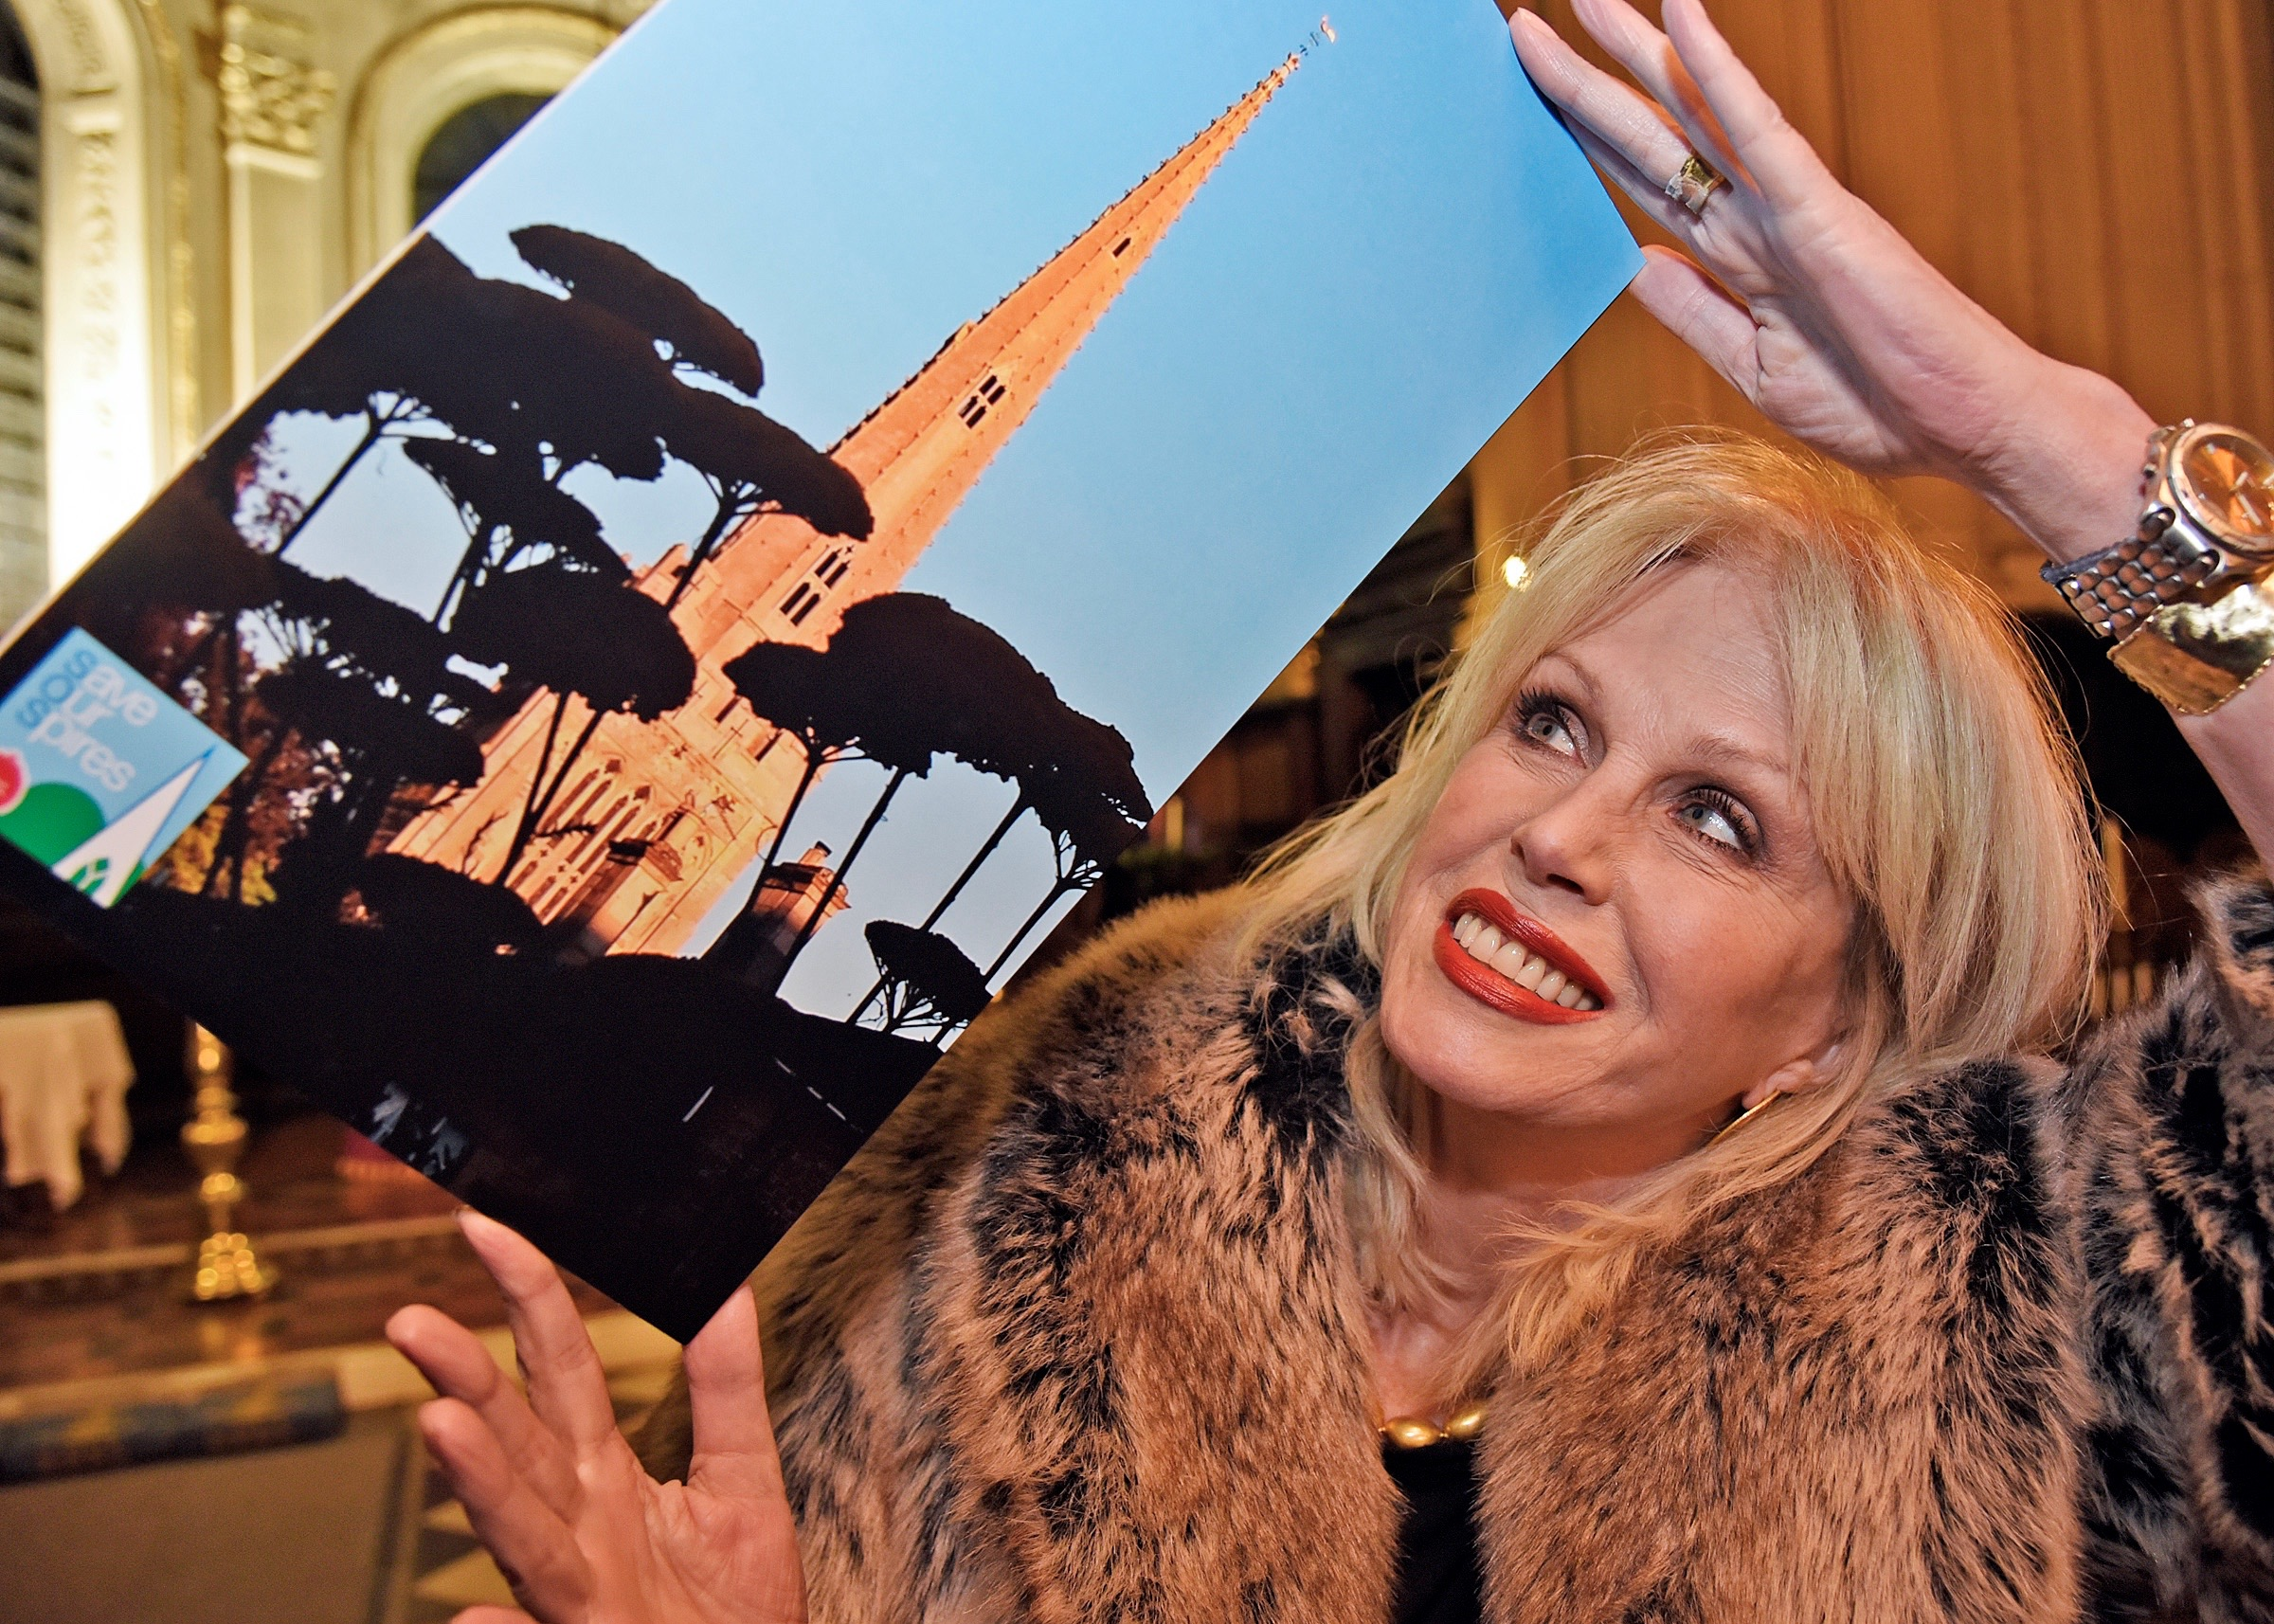 Joanna Lumley holding a photograph of St Peter's church in Oundle, Northamptonshire, taken by William Gunson